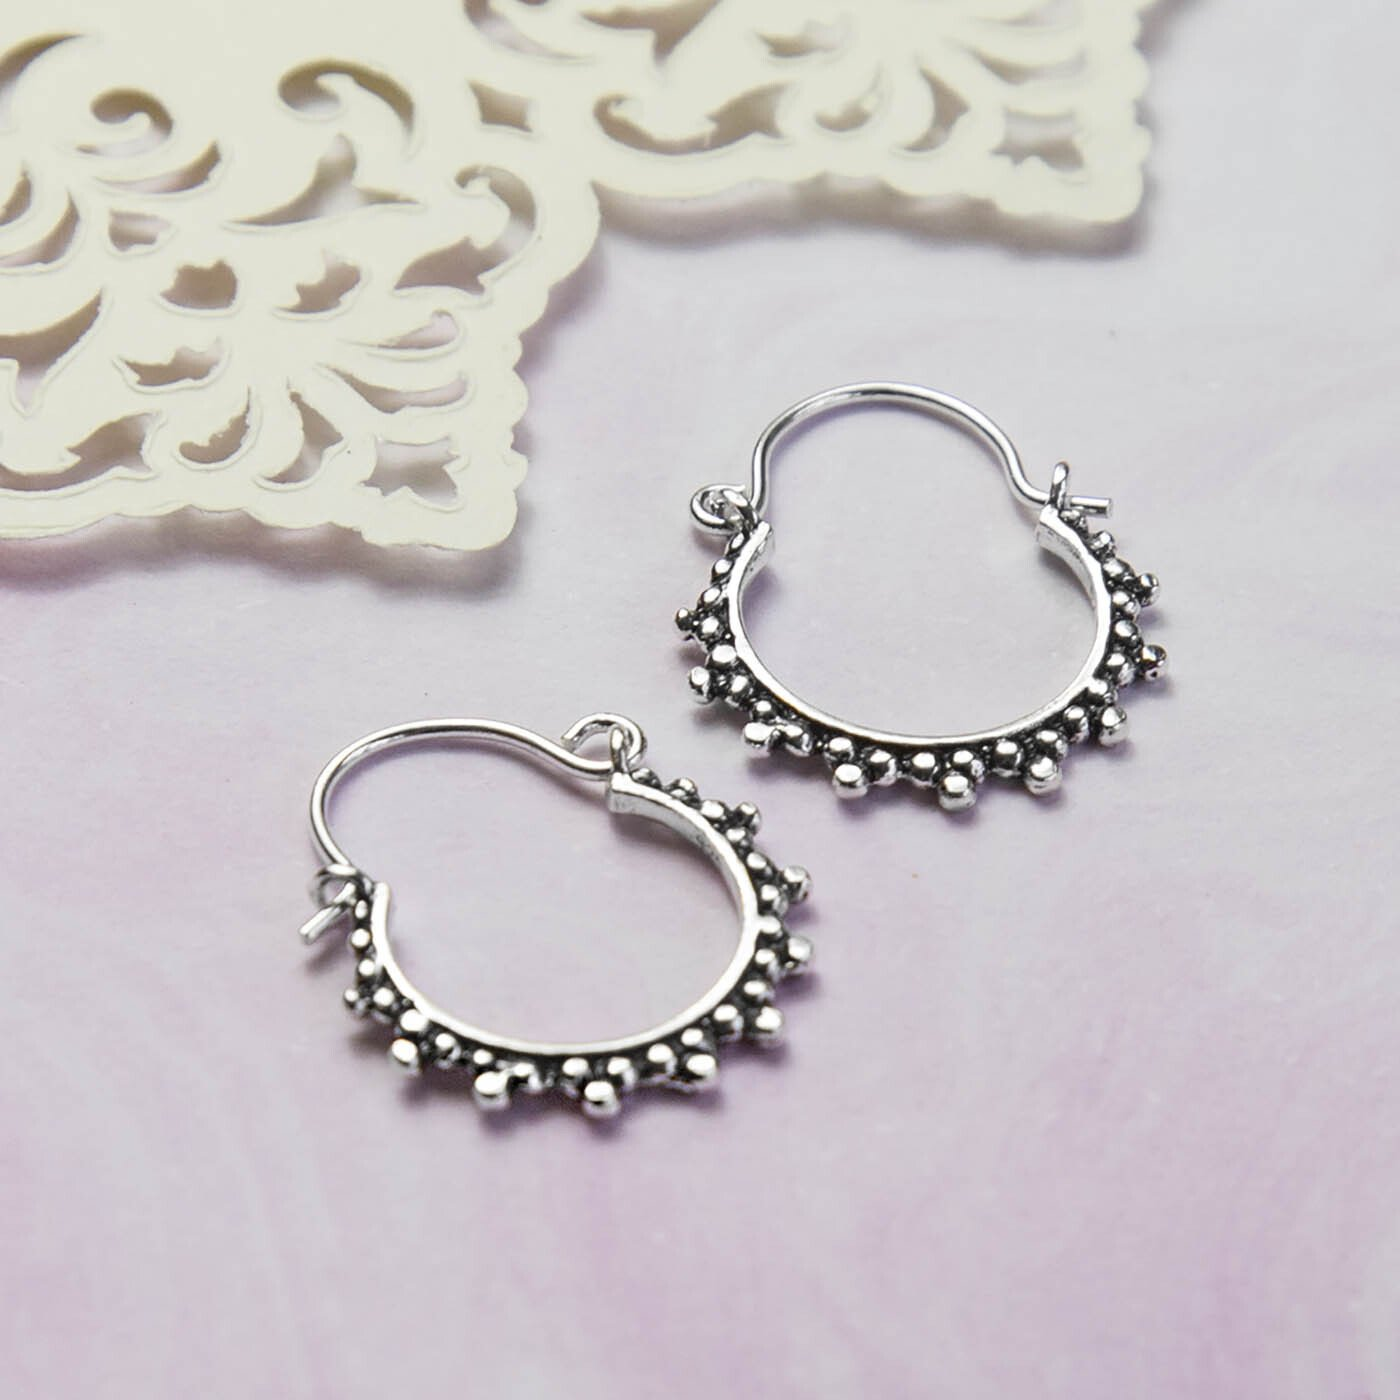 Silver and Oxidised Hoops with circular ball detail pattern on purple Watercolour background with Layered Cream Cut out Pattern paper